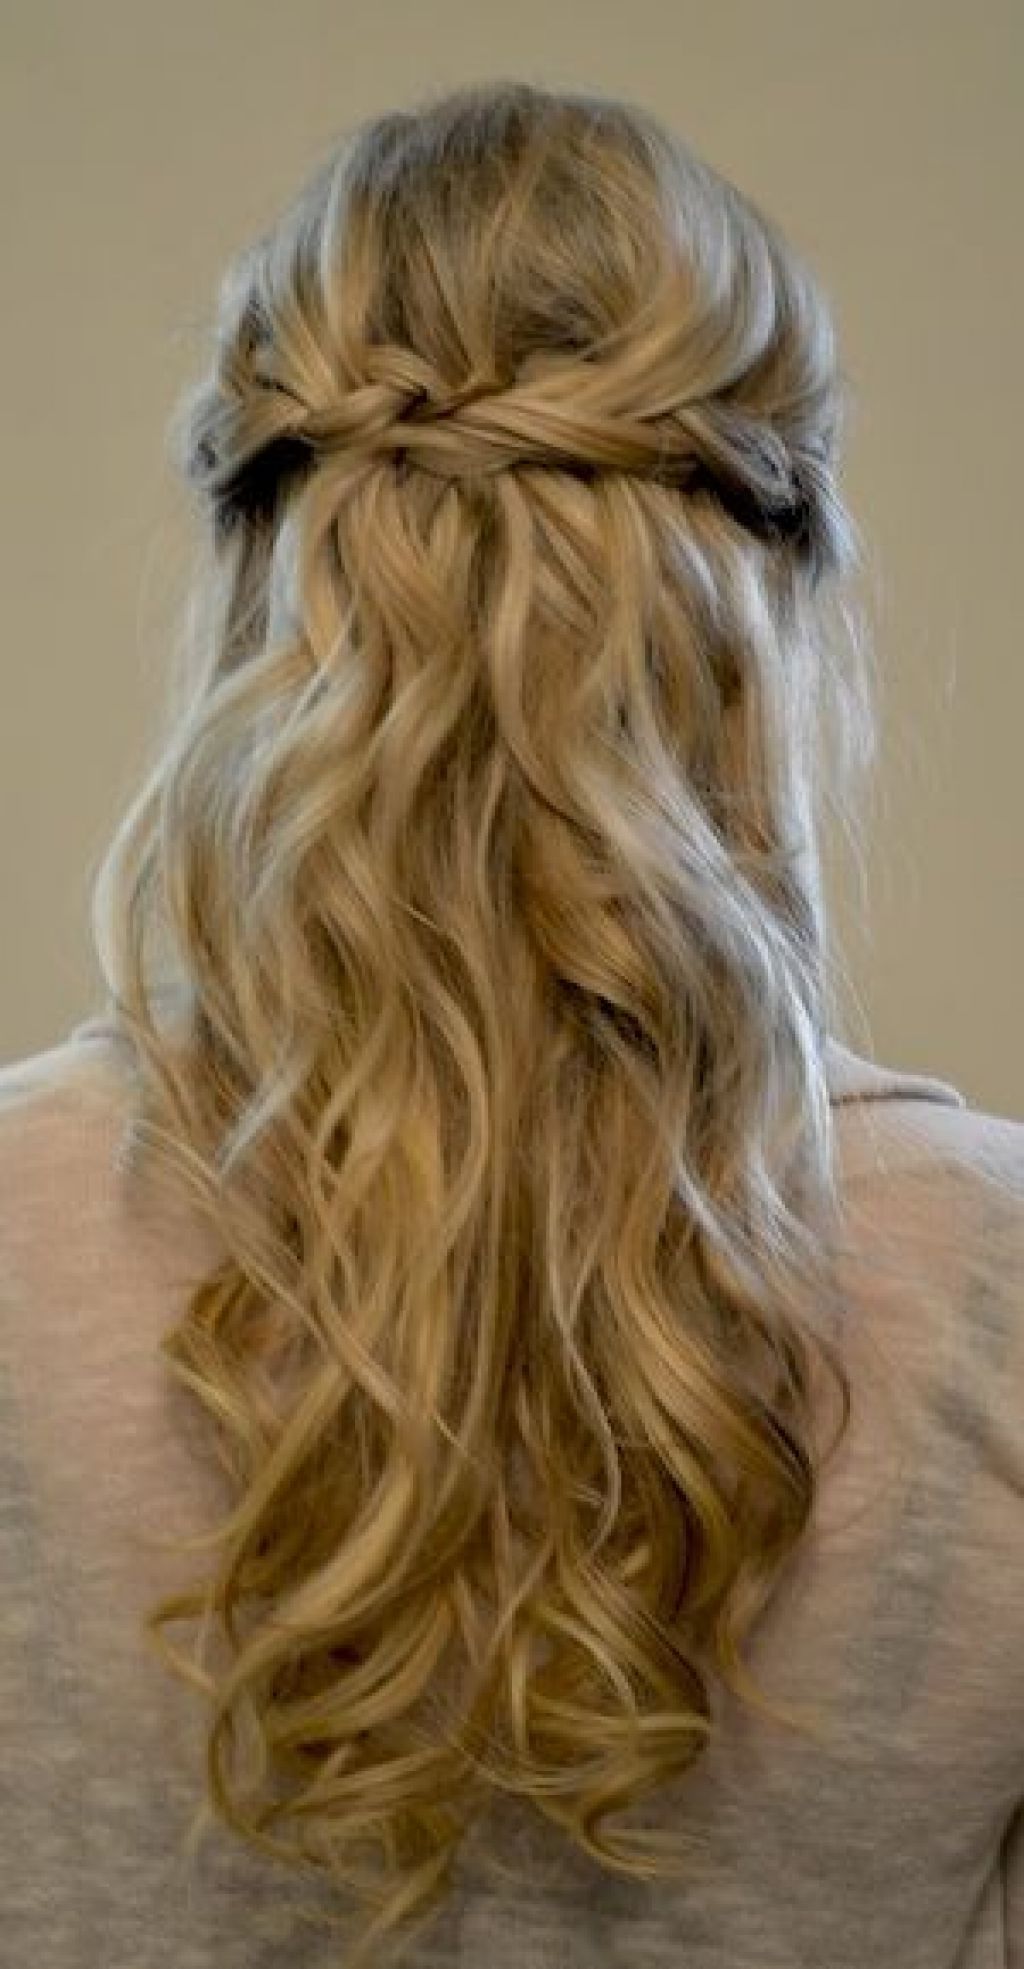 Endearing Half Up Half Down Hairstyles For Homecoming On Simple Within Half Updo Hairstyles (View 6 of 15)